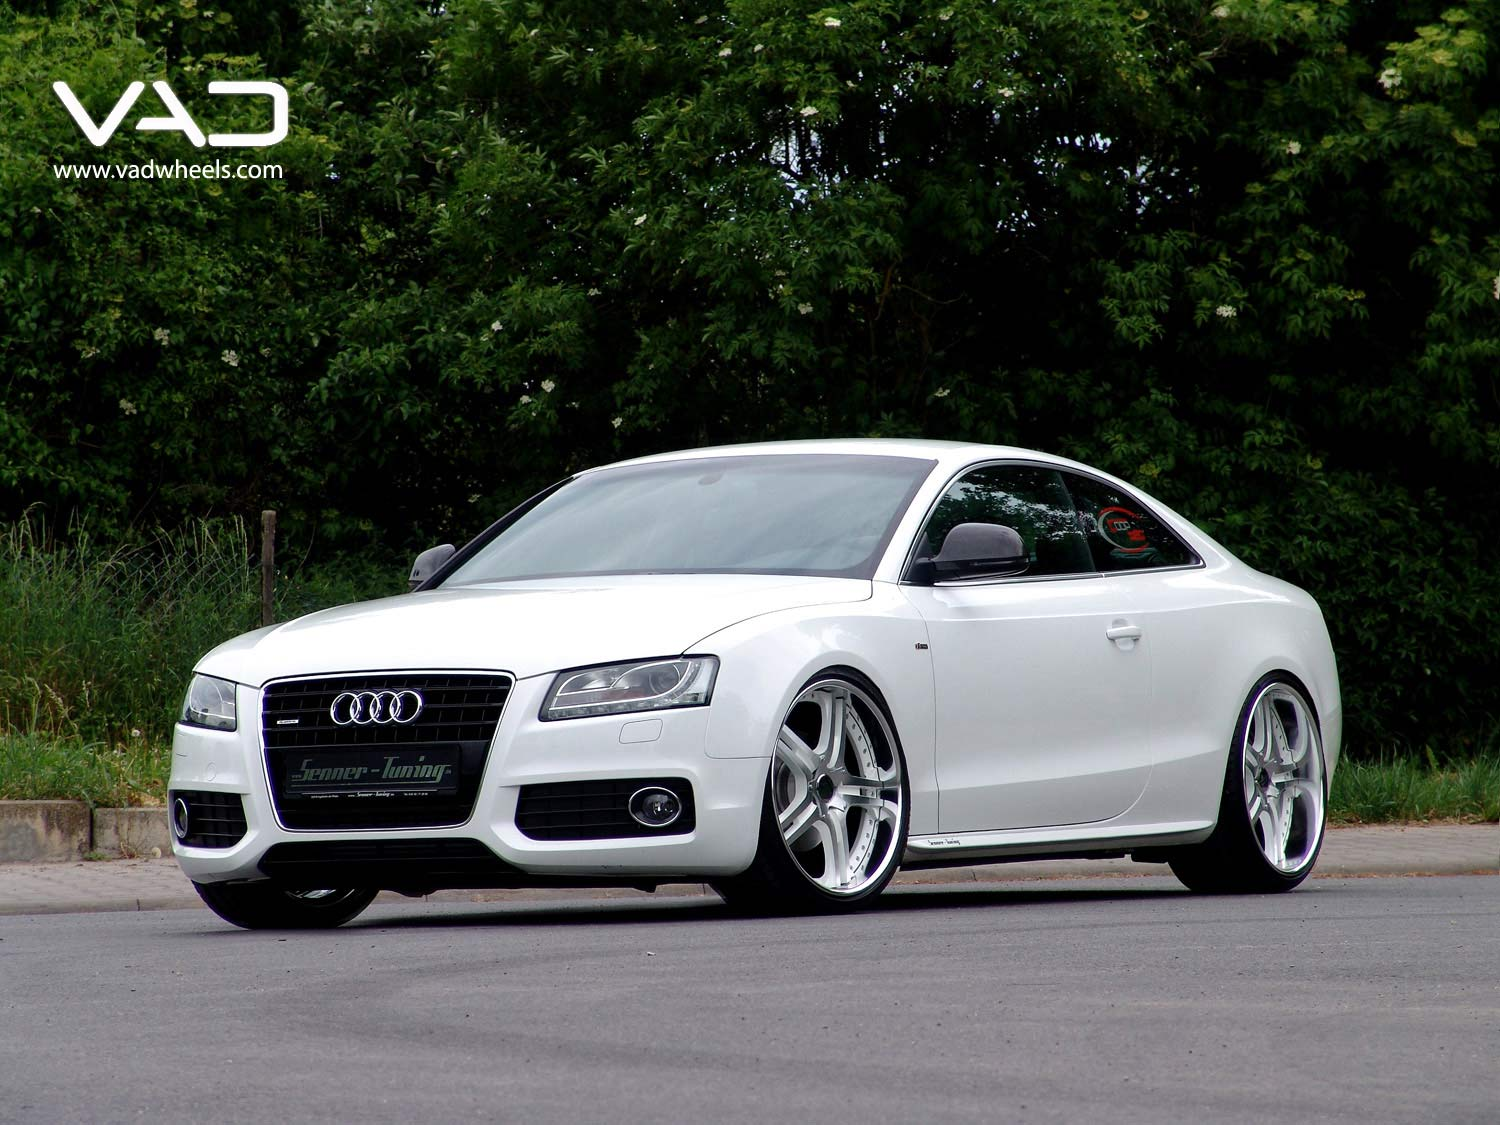 Audi-A5-21''-S250-White-&-Polished-Front-Shot